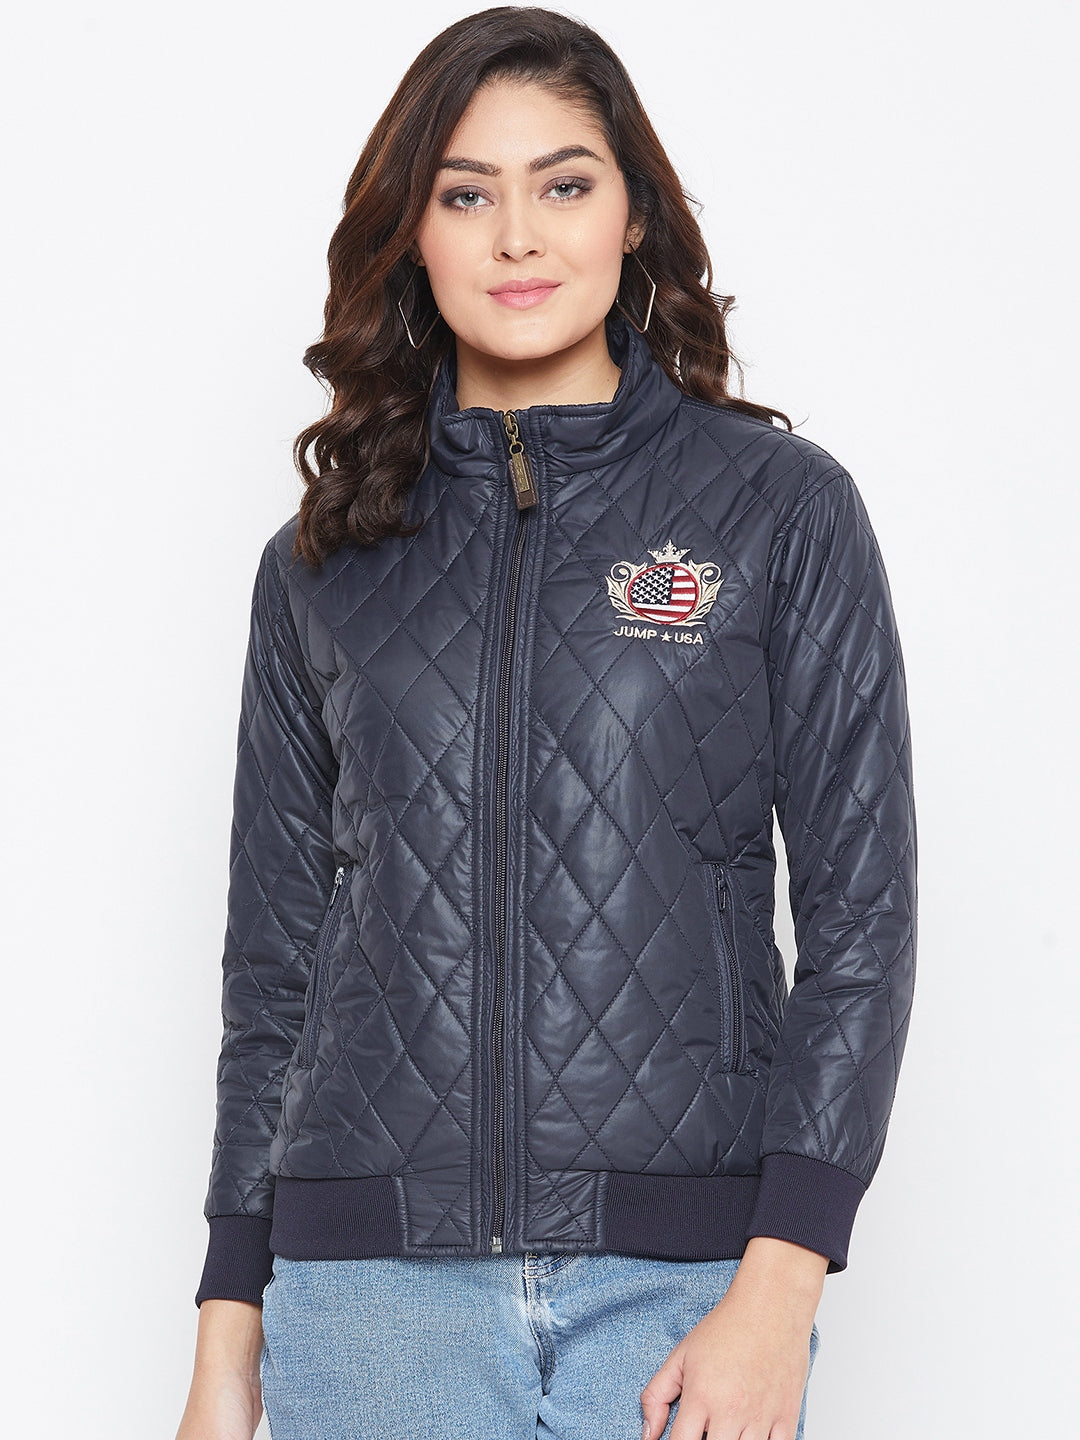 JUMP USA Women Navy Blue Self Design Jacket - JUMP USA